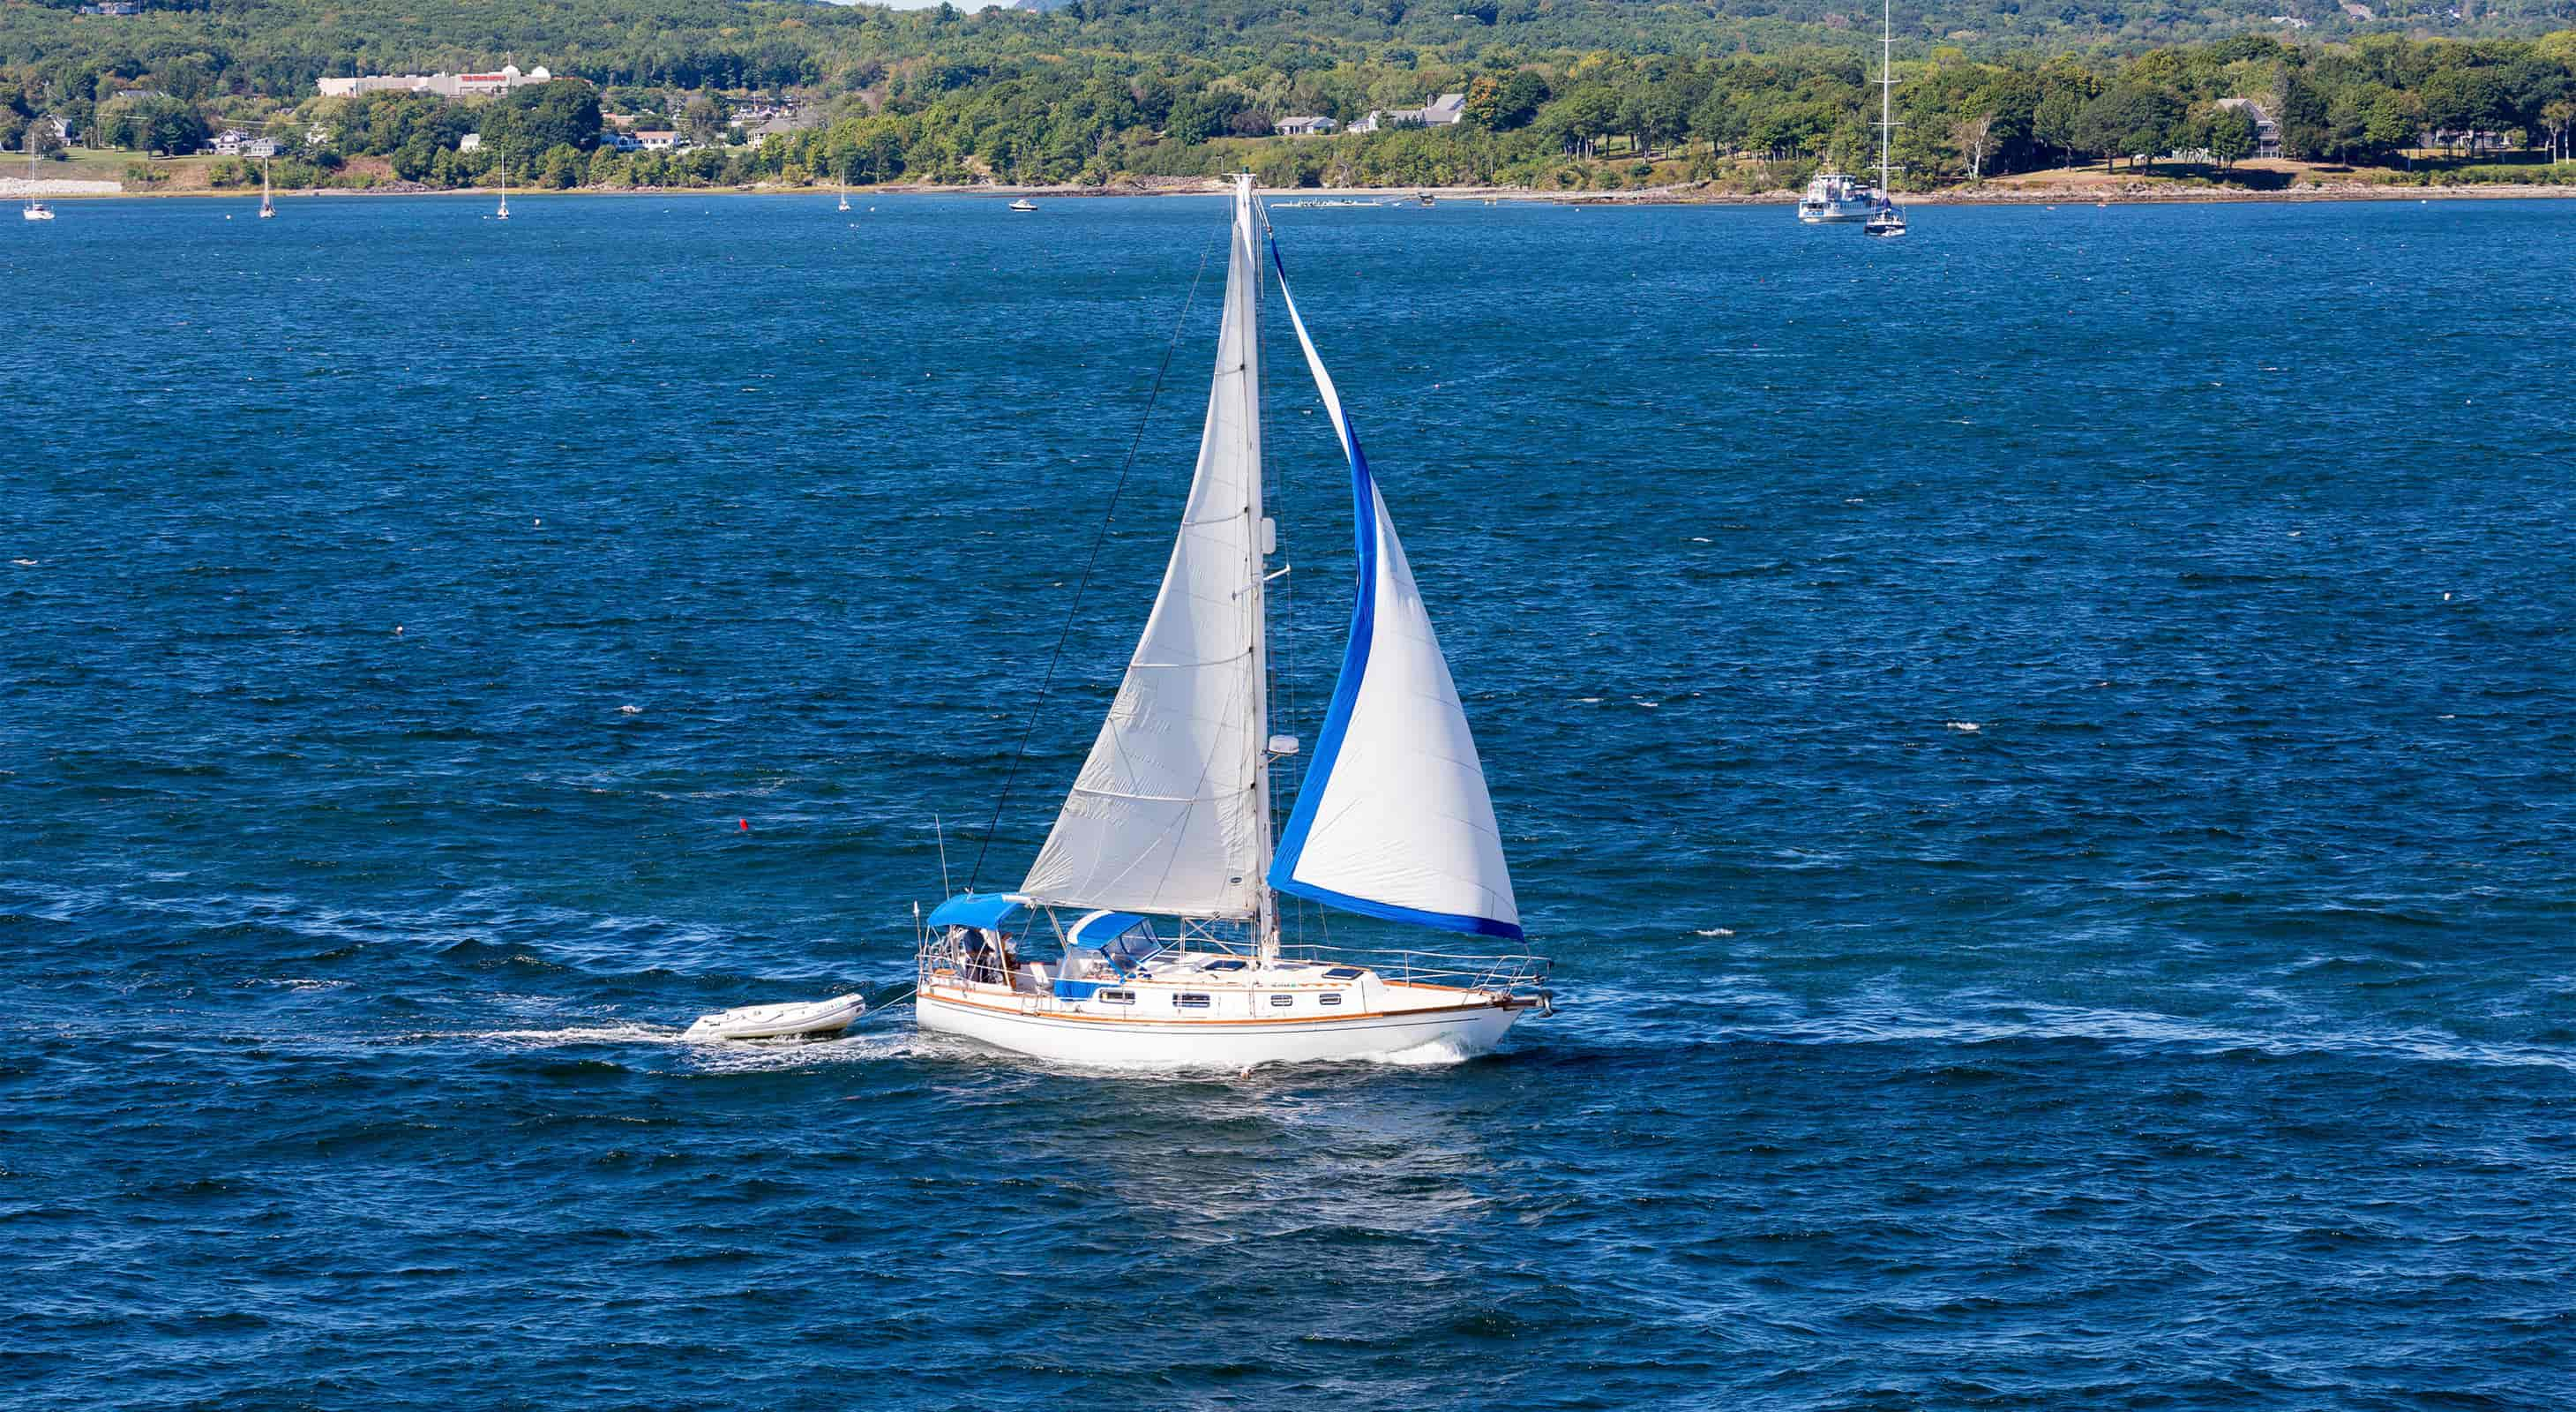 White sailboat with white sails on a blue ocean